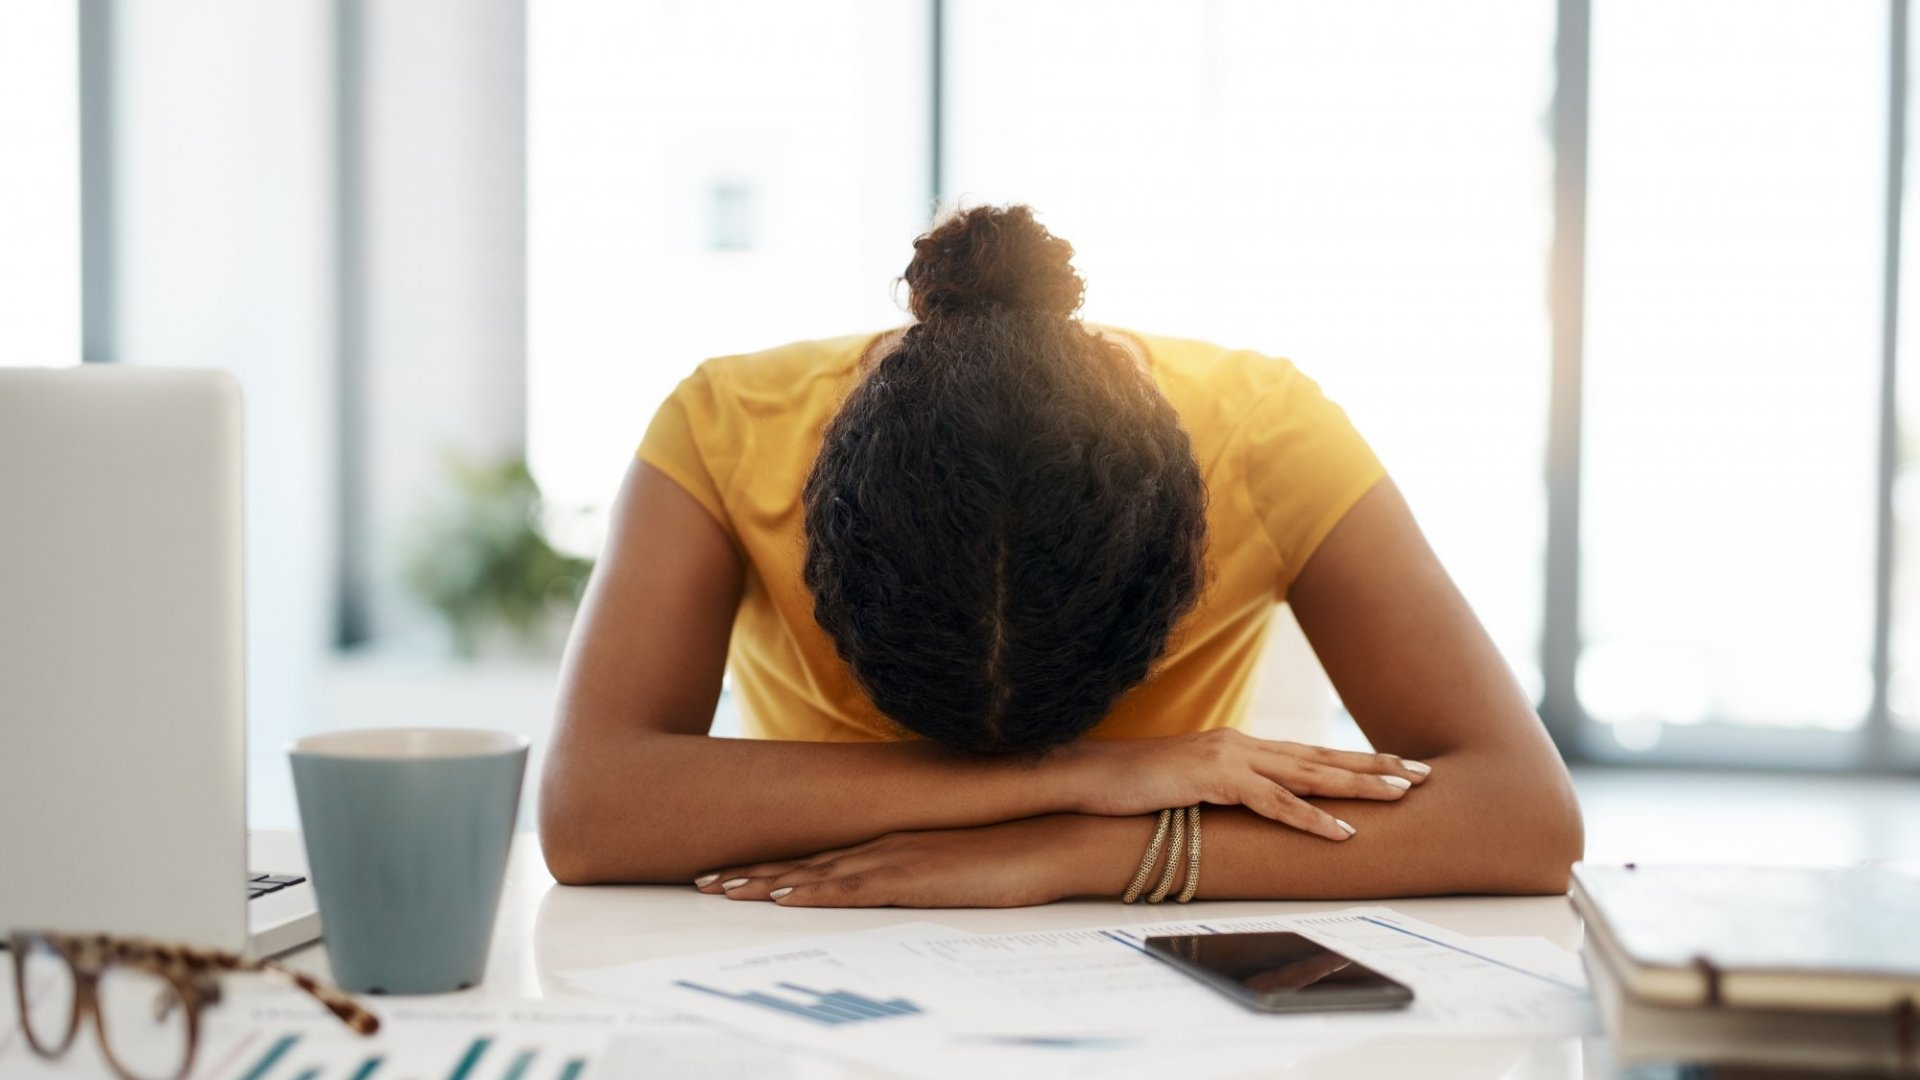 Are You Suffering From Burnout? Answer These 4 Questions to Find Out